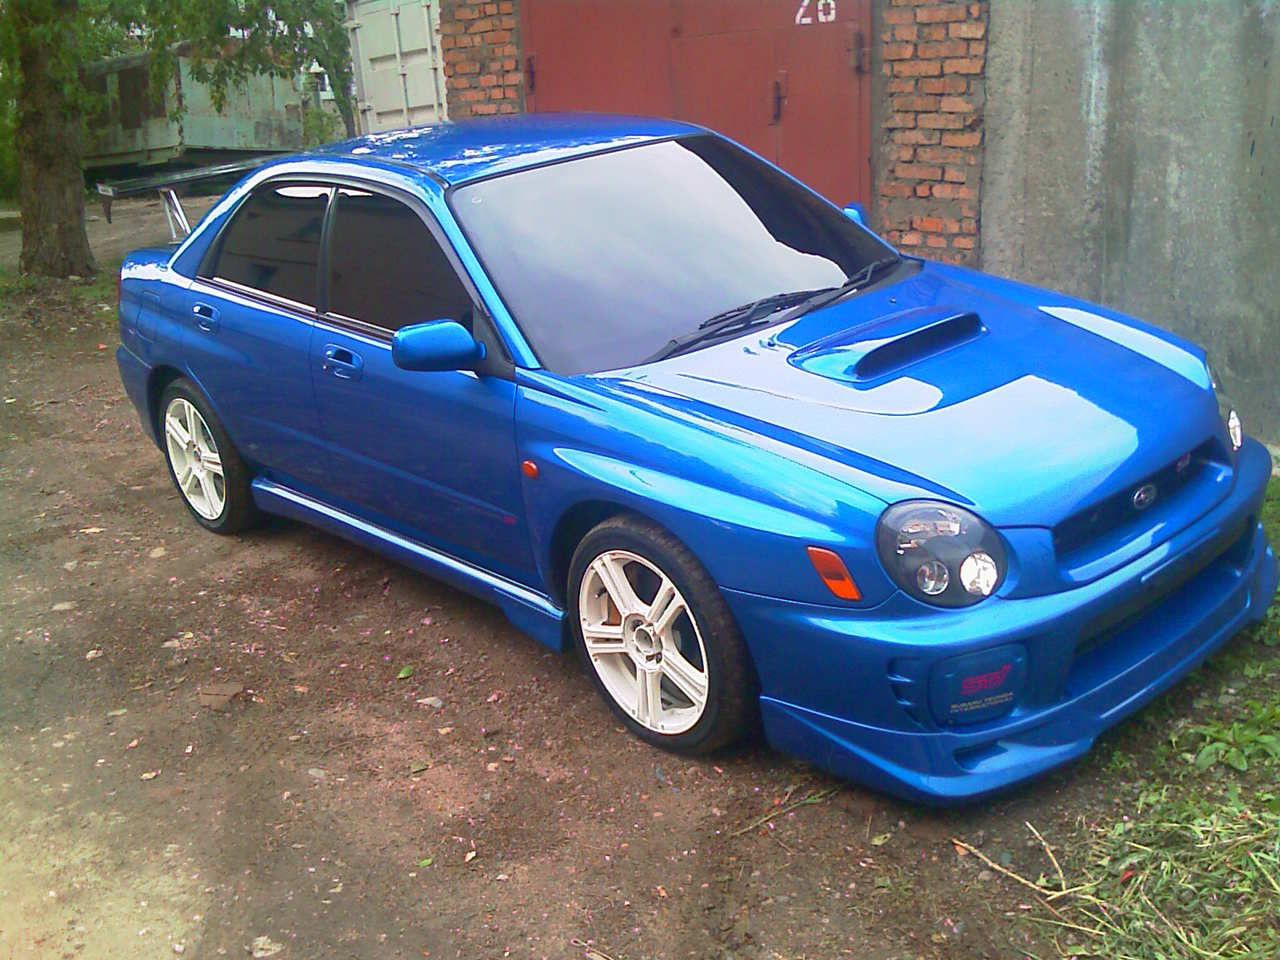 2002 subaru impreza wrx sti images gasoline manual for sale. Black Bedroom Furniture Sets. Home Design Ideas